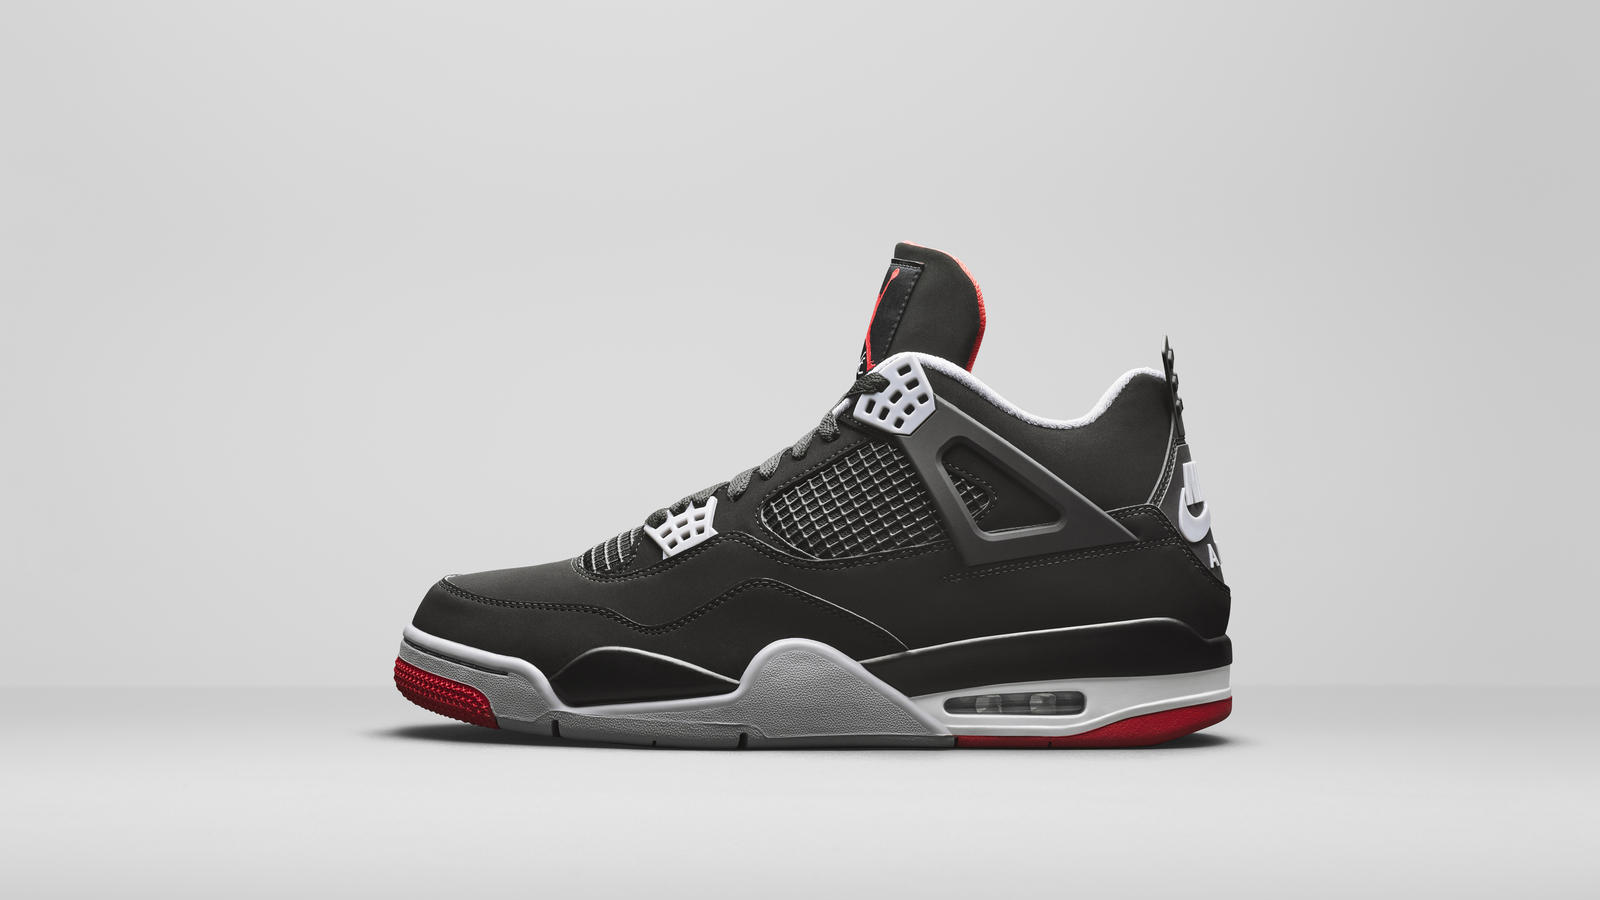 Air Jordan 4 Bred Official Images and Release Date 4